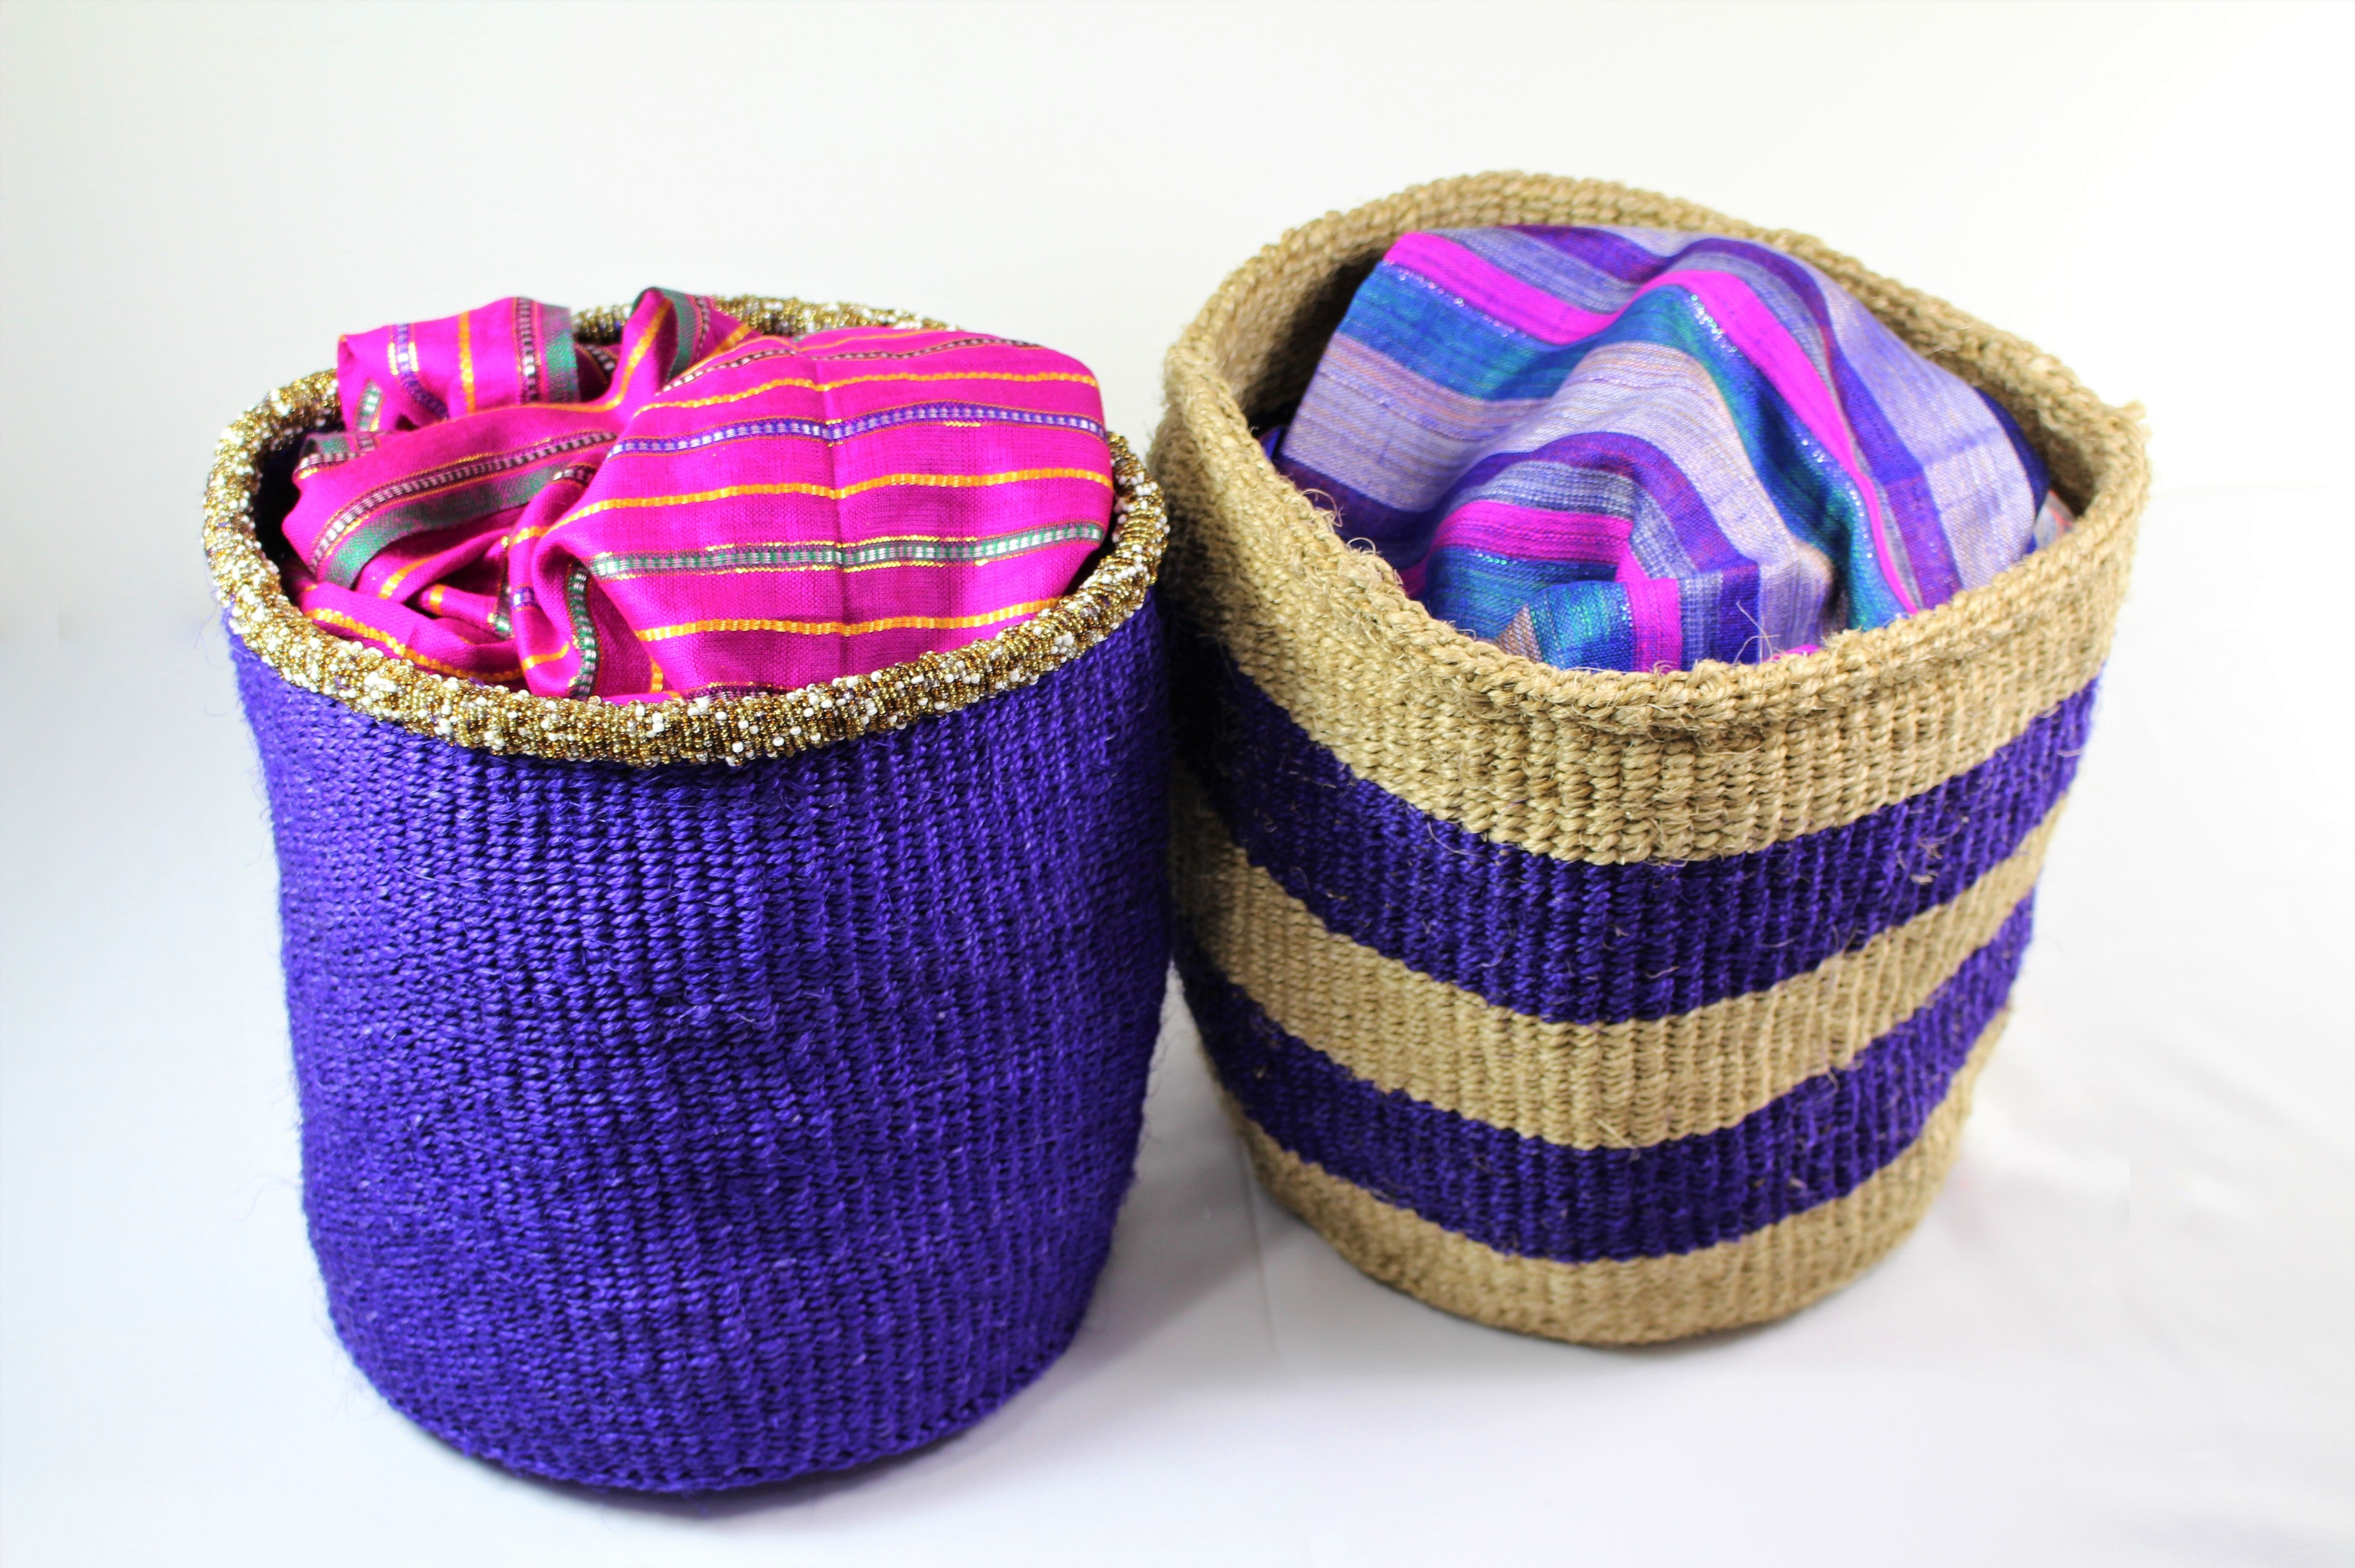 Striped Violet Handmade Woven Hand Basket - Bridges to Borders